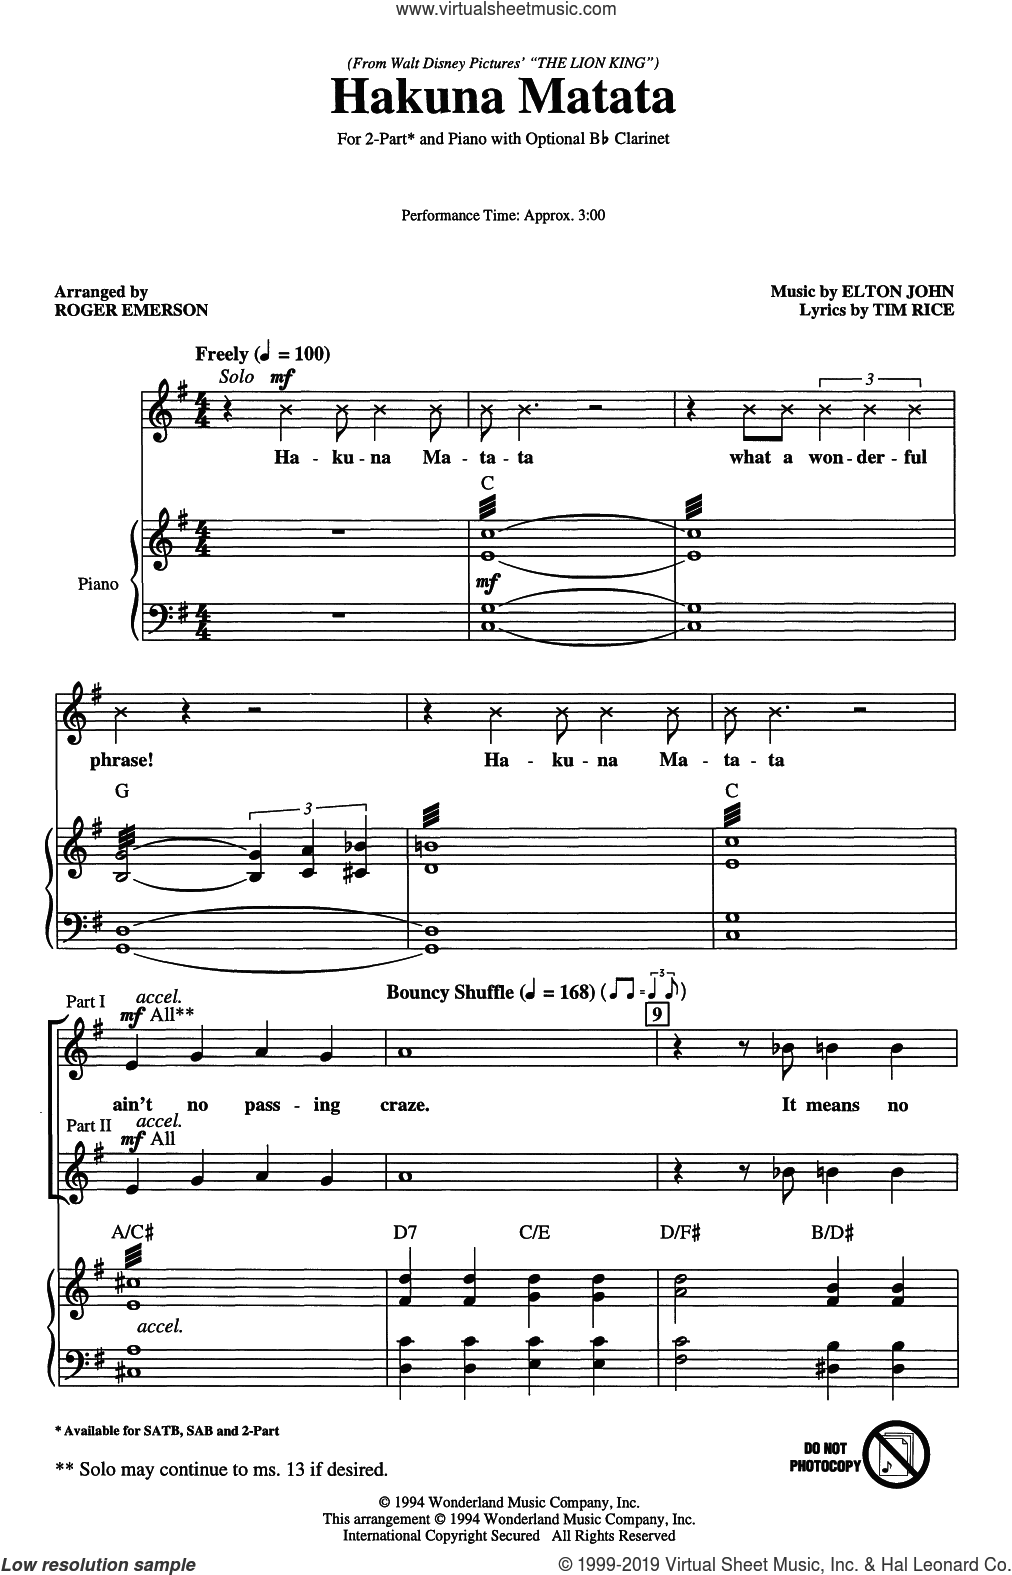 Hakuna Matata (from Disney's The Lion King) (arr. Roger Emerson) sheet music for choir (2-Part) by Elton John, Roger Emerson and Tim Rice, intermediate duet